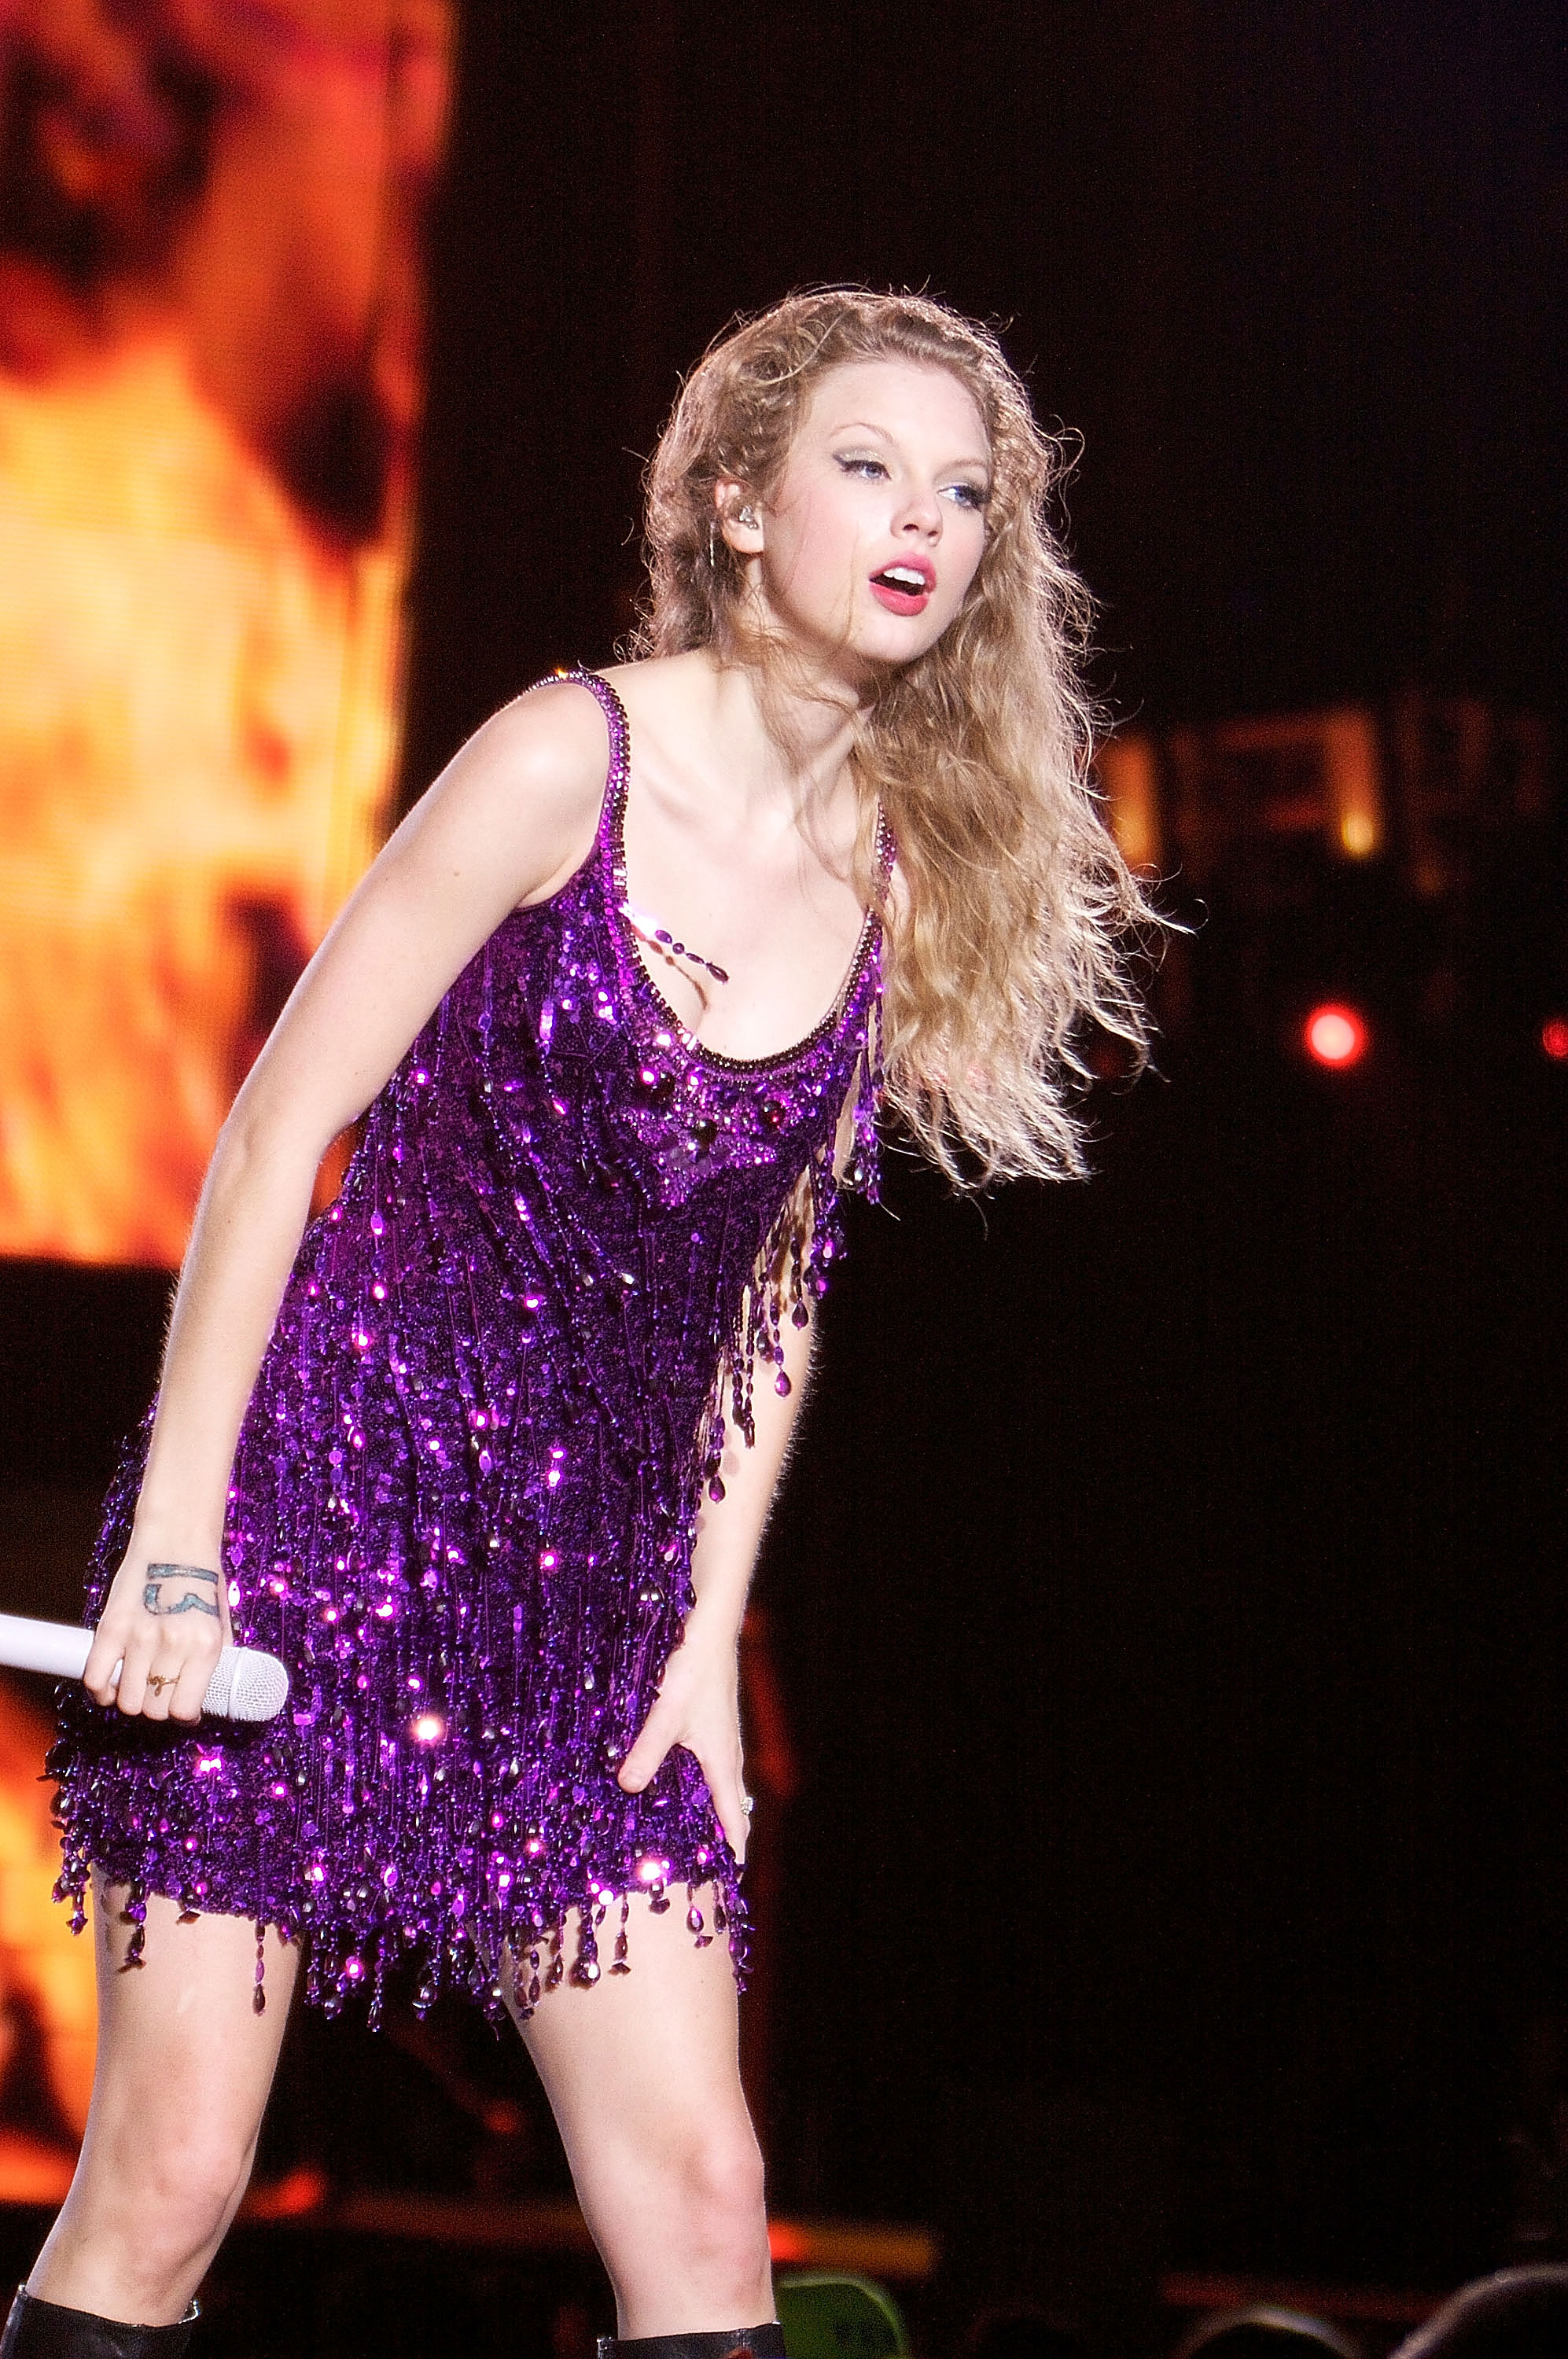 32510_Taylor_swift_performs_her_Fearless_Tour_at_Tiger_Stadium_004_122_944lo.jpg